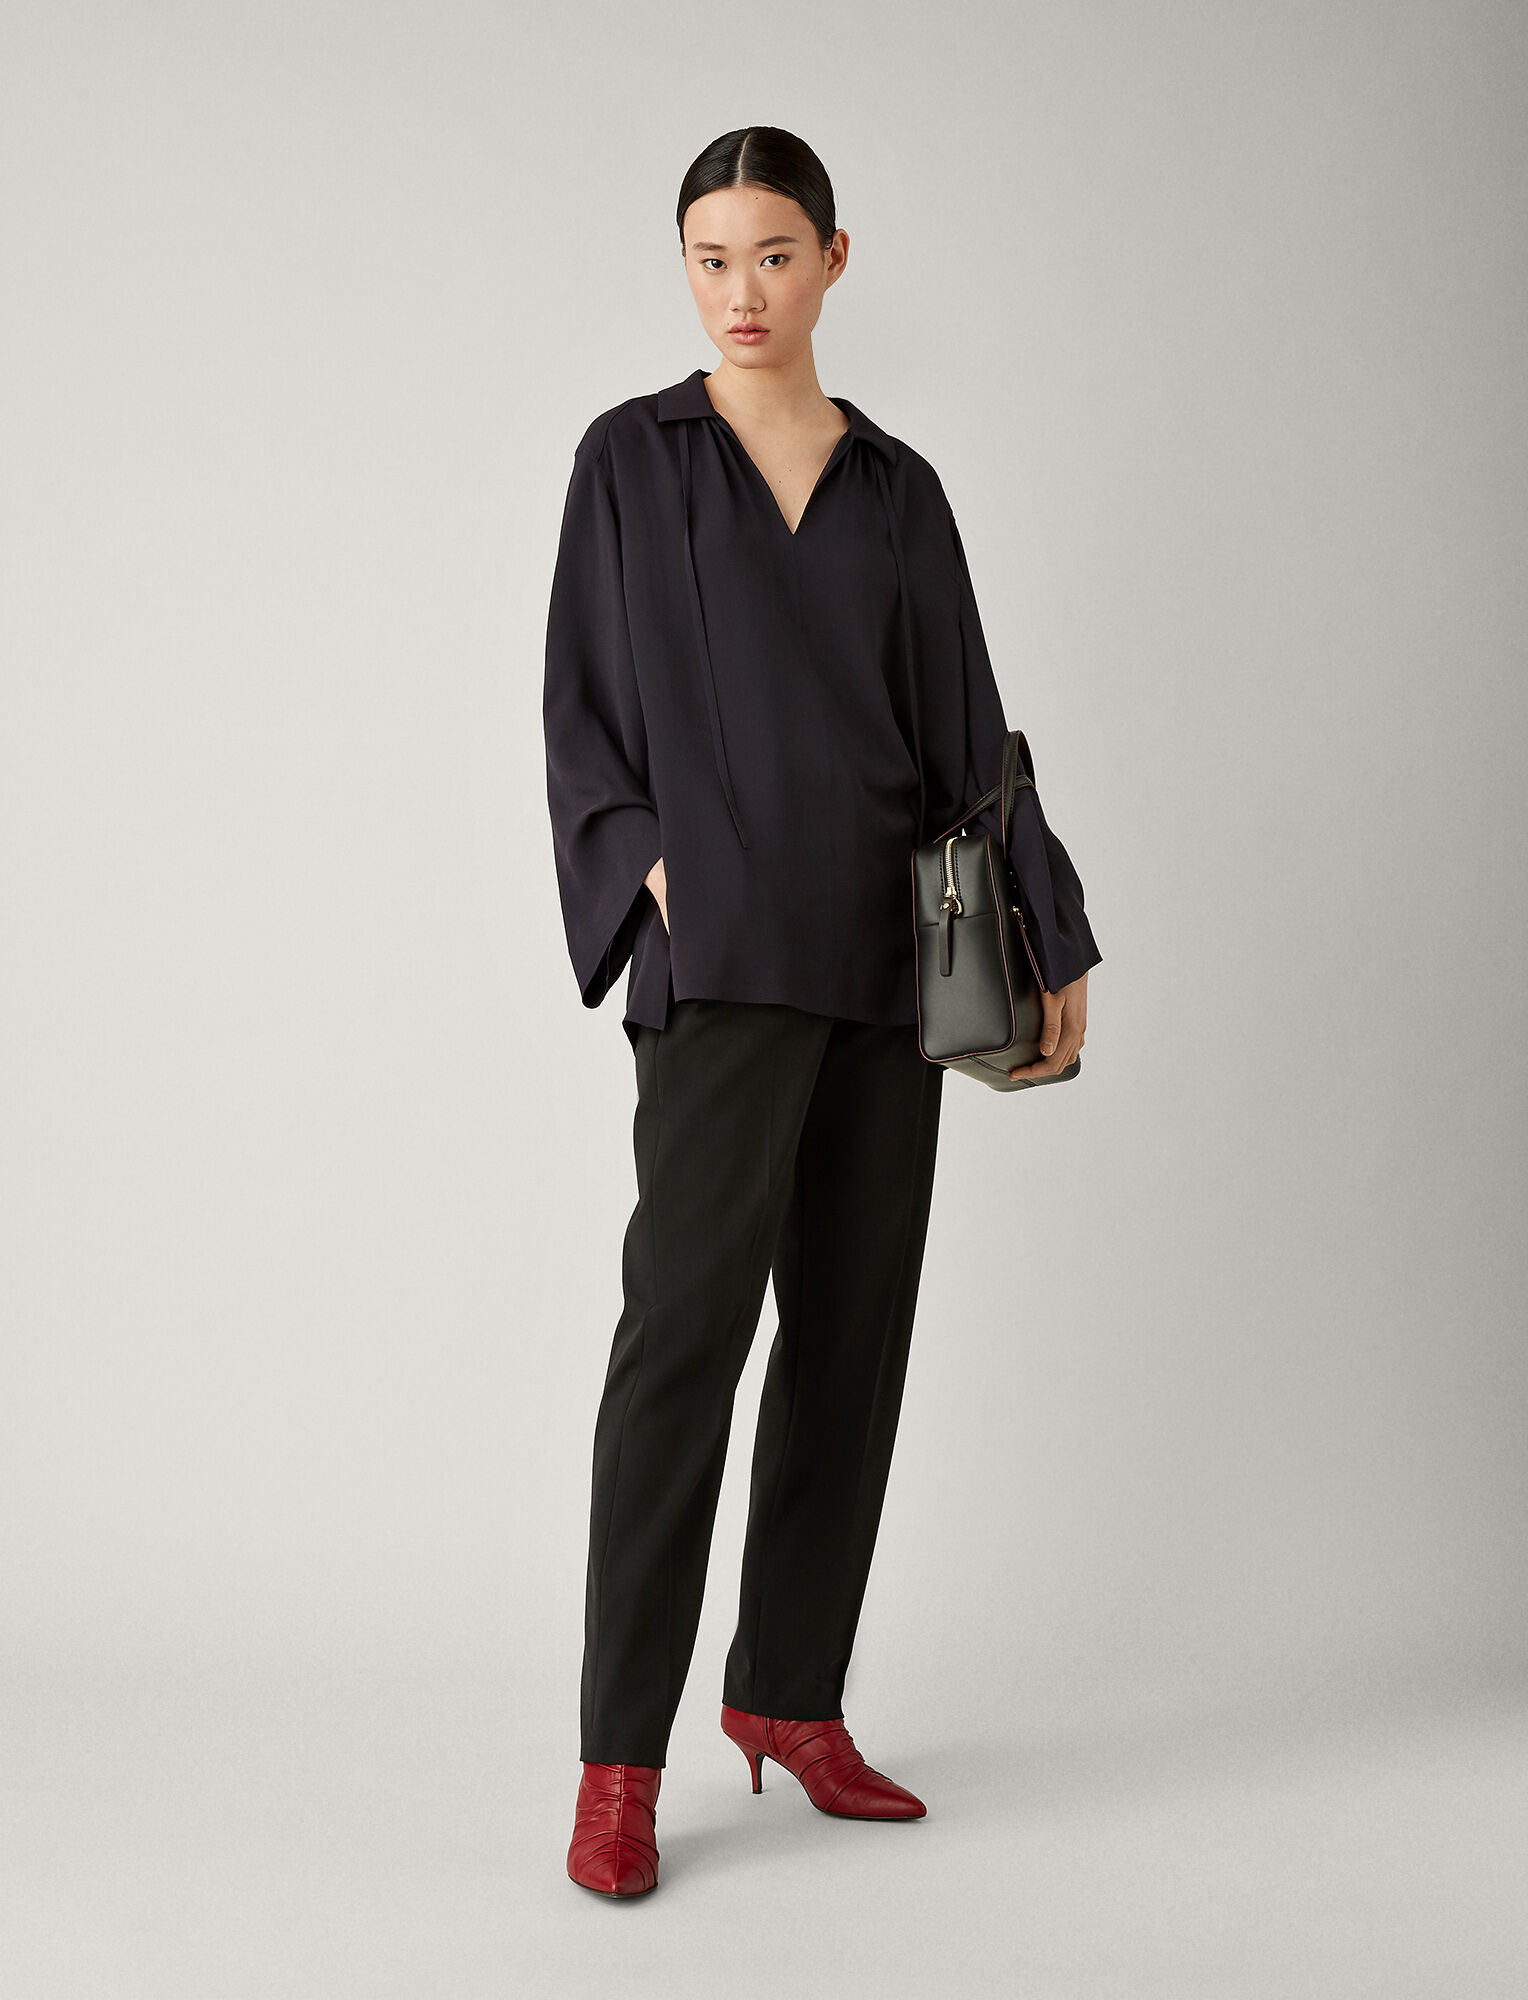 Joseph, Fran Silk Rib Shirting Blouse, in NAVY